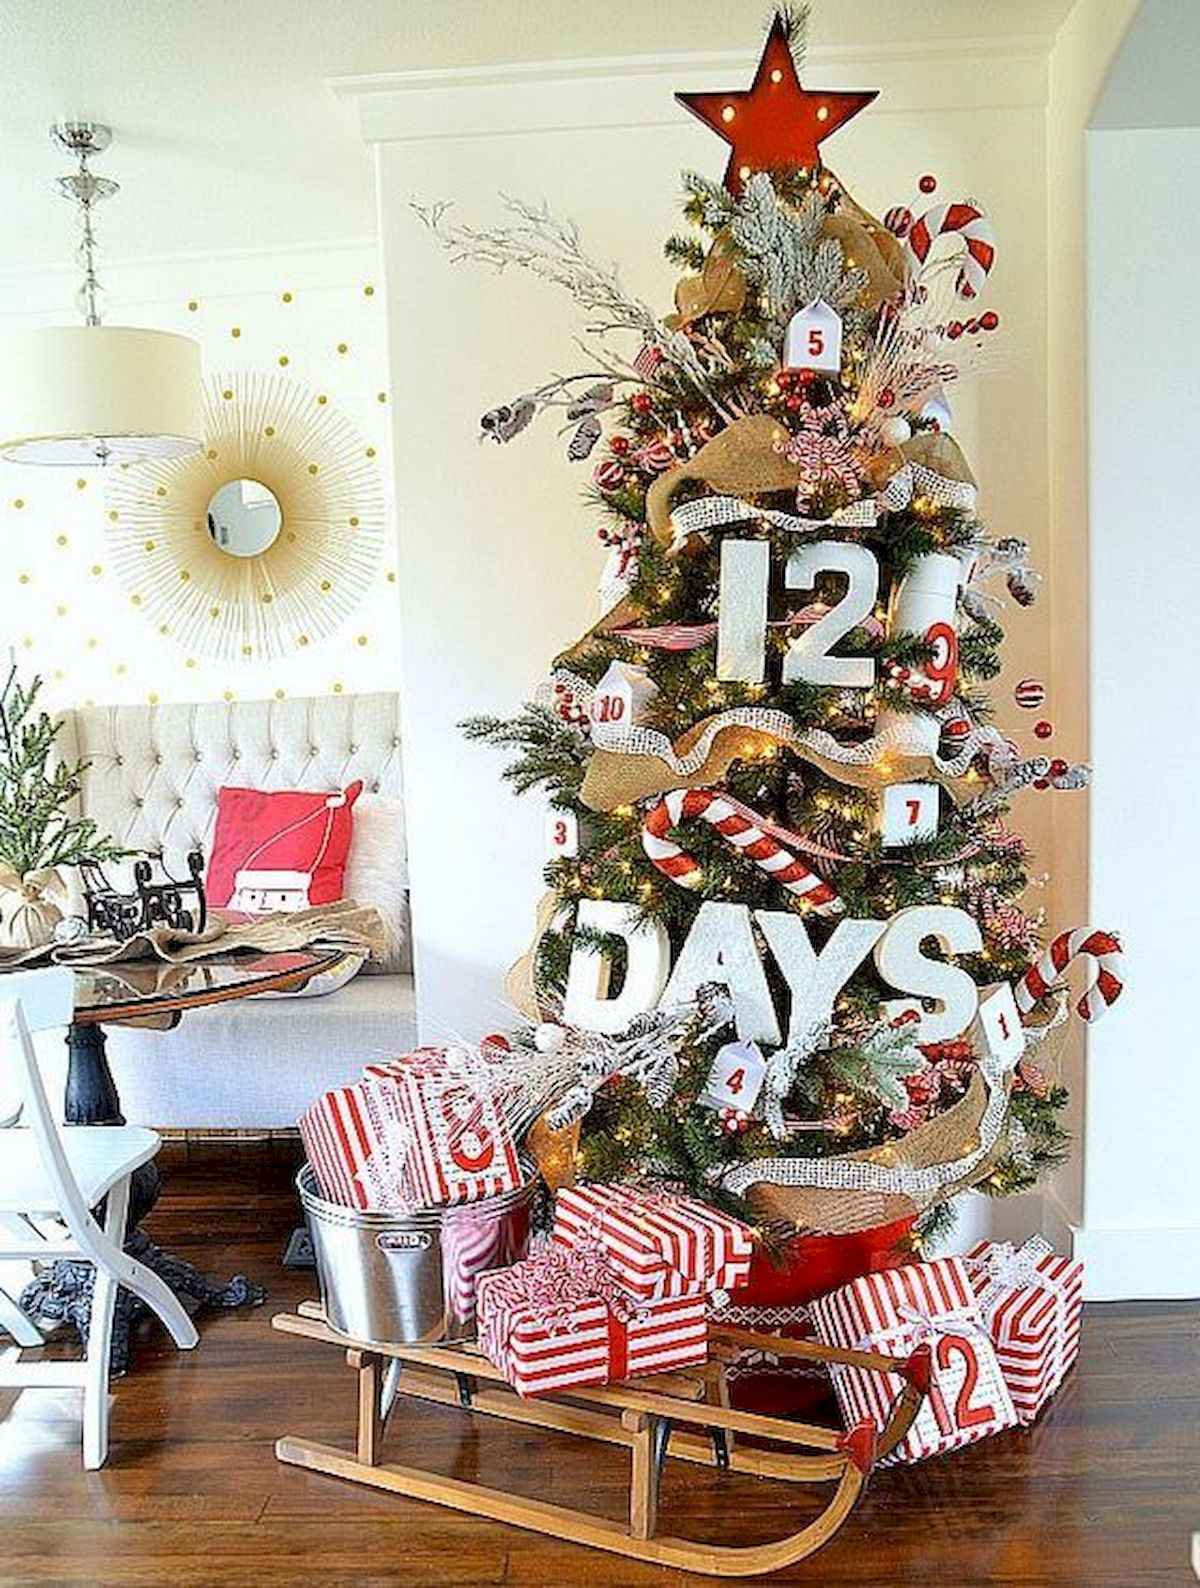 60 awesome christmas tree decorations ideas (39)